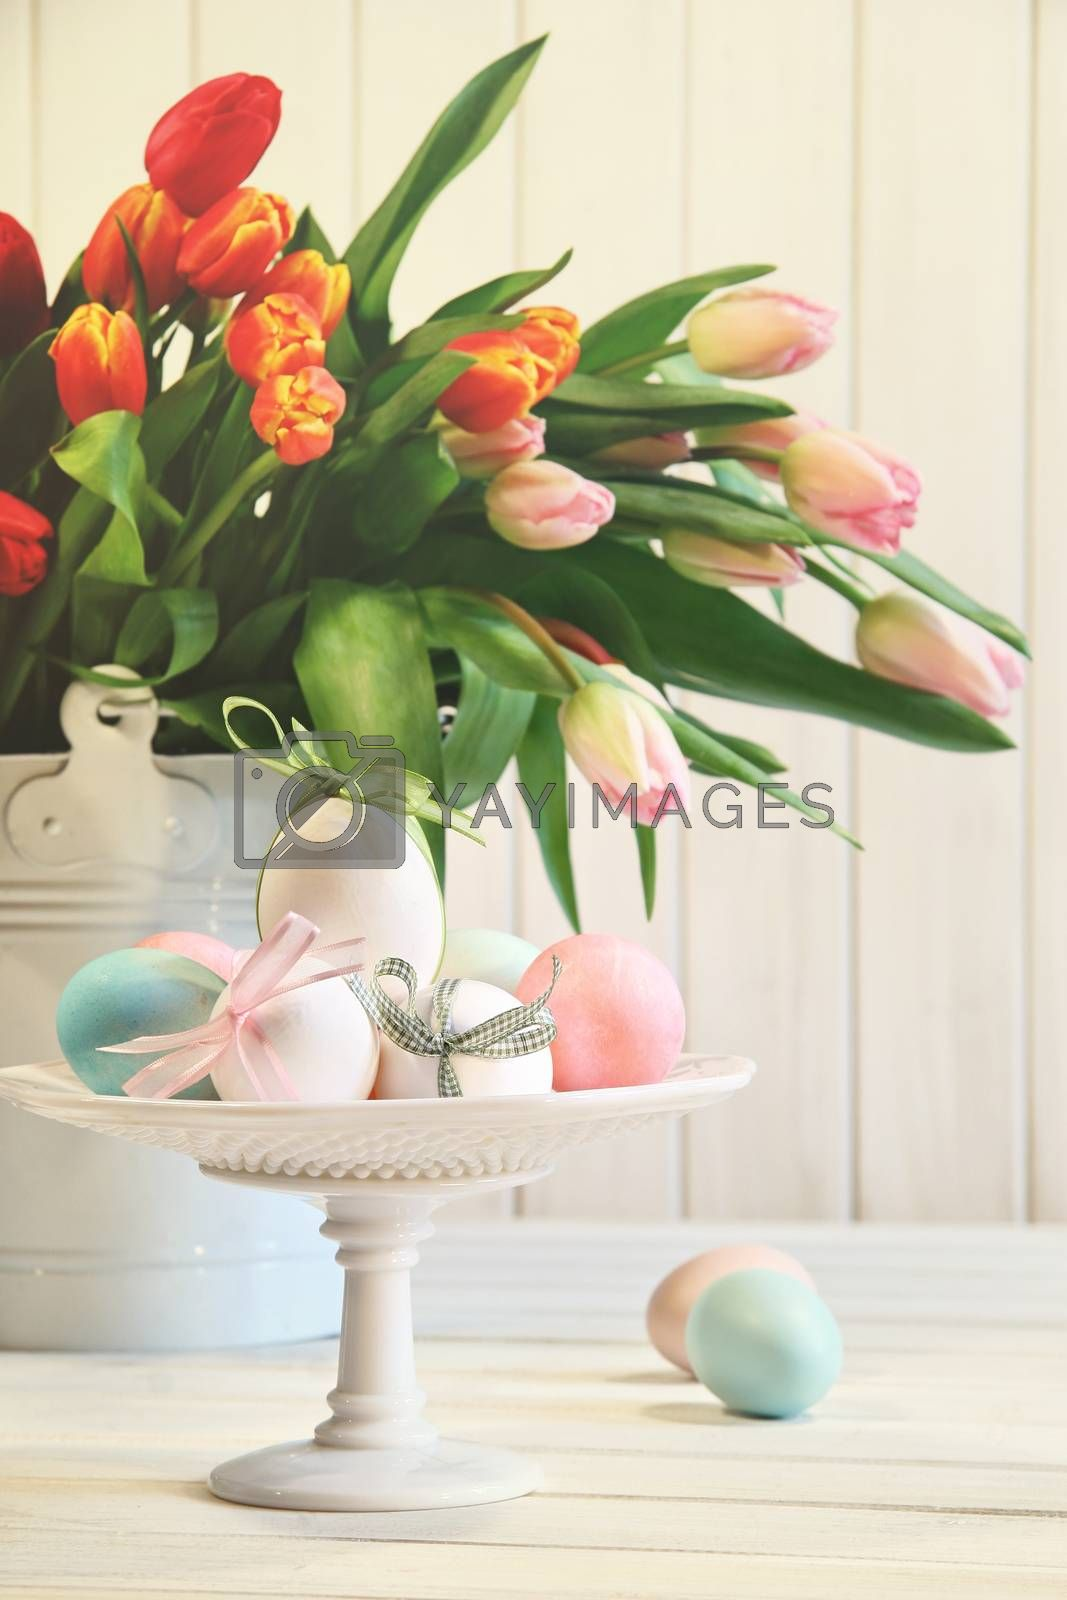 Colored eggs with bows with tulips in background